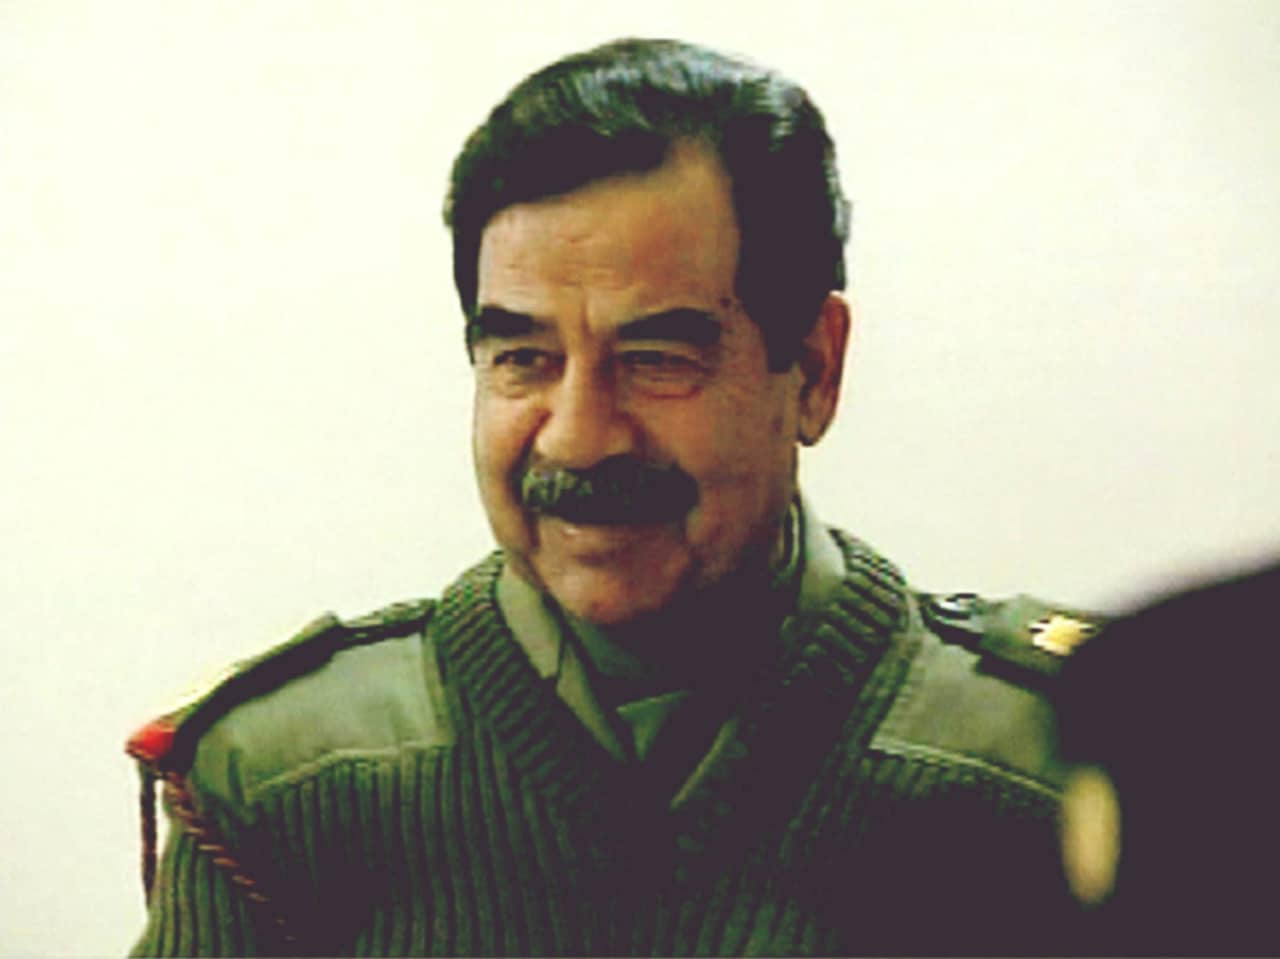 Saddam hussein photo gallery image Strategic Airpower The History of Bombers - Boeing